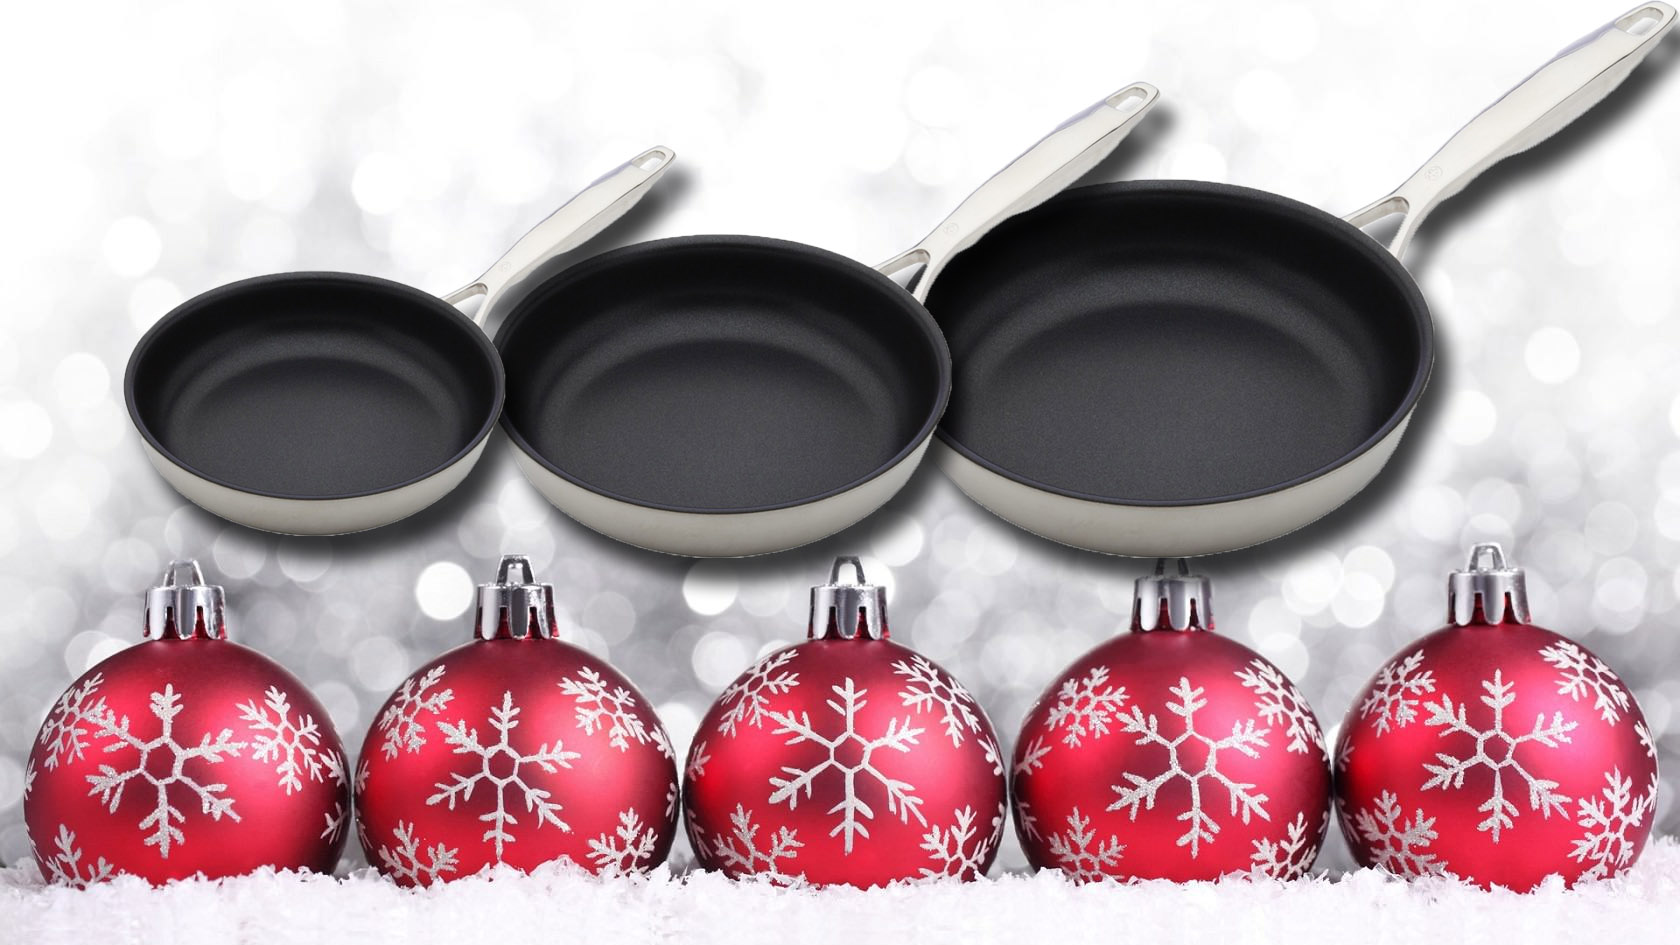 Swiss Diamond prestige pan, holiday gift ideas